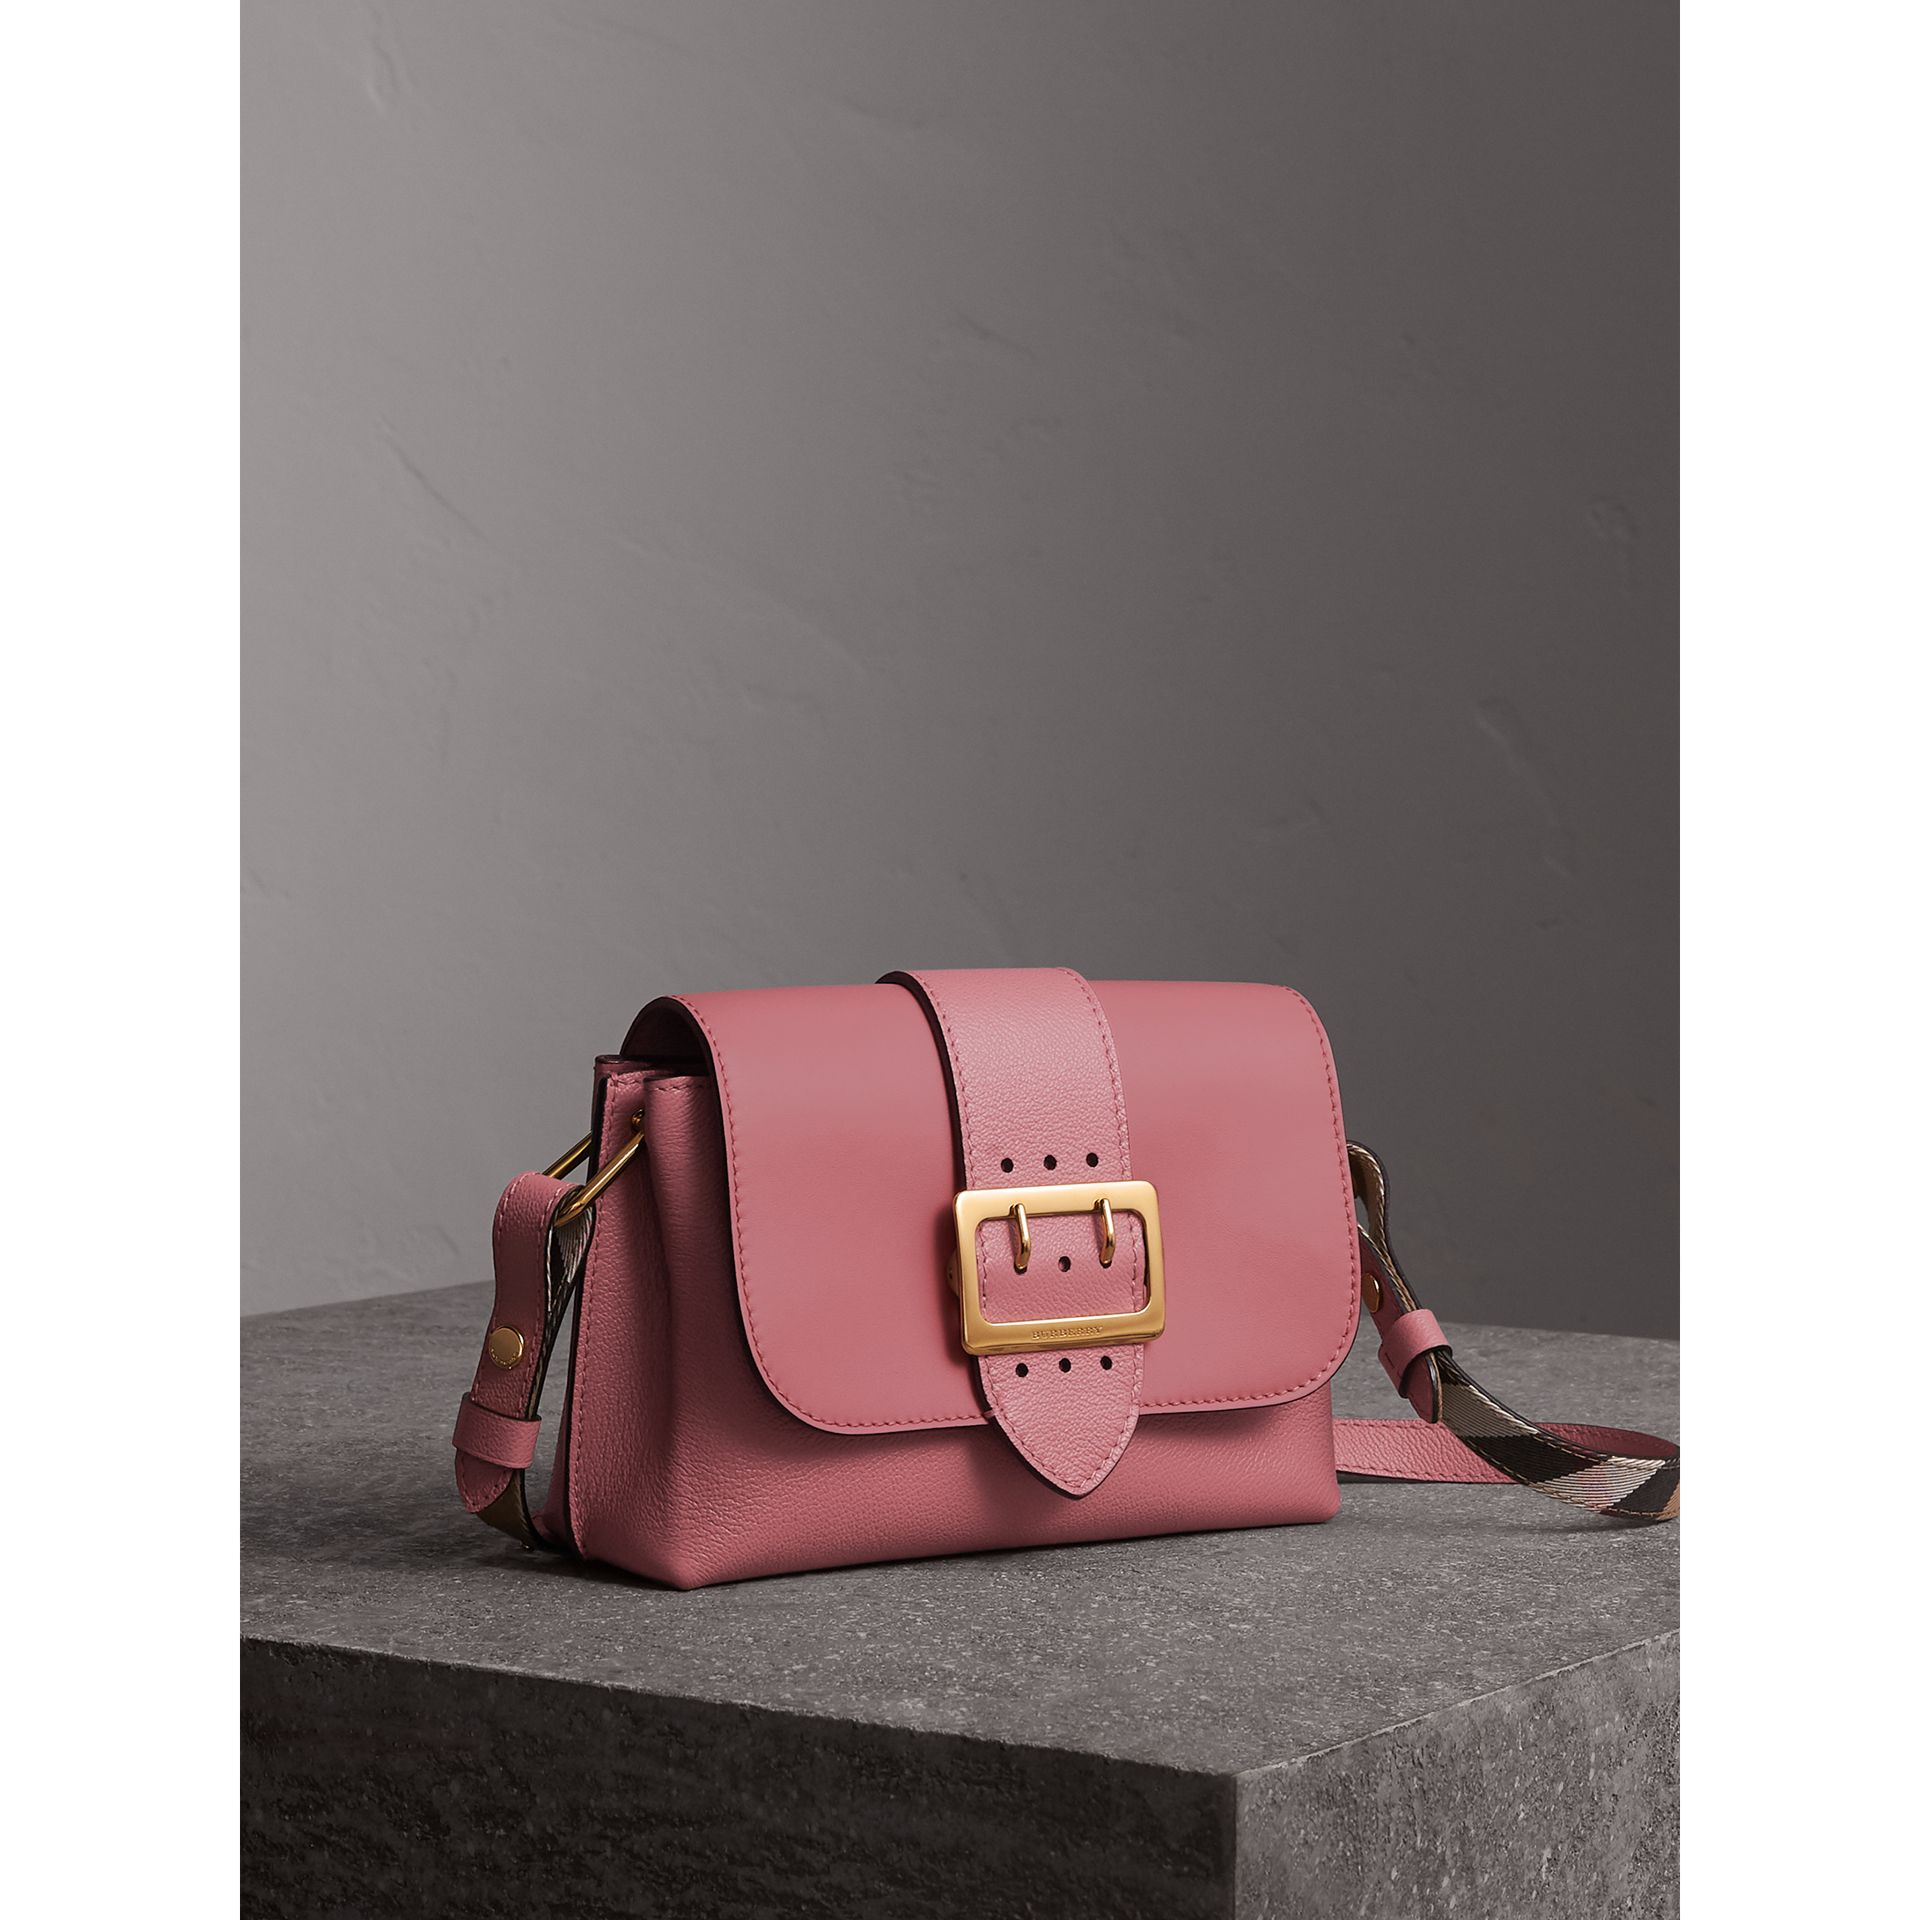 The Buckle Crossbody Bag in Leather in Dusty Pink - Women | Burberry Singapore - gallery image 7